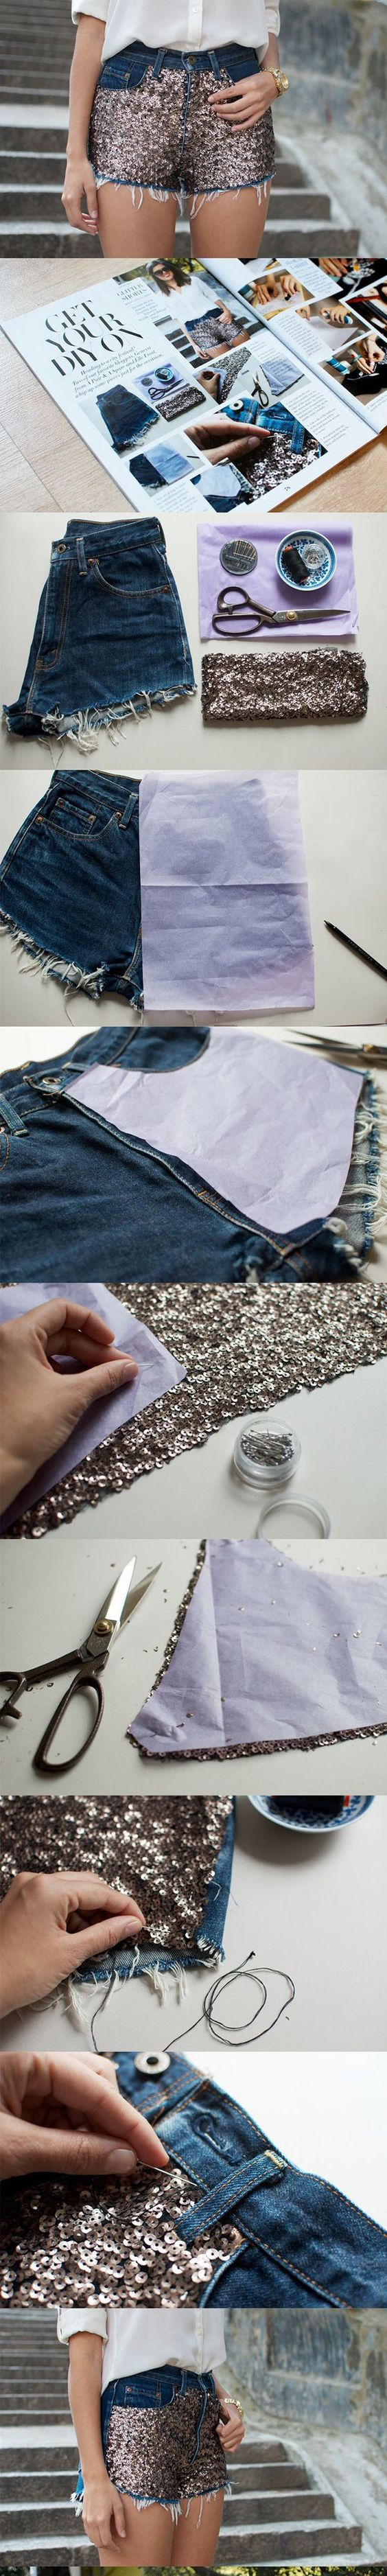 DIY Sequin Embellished Denim Shorts